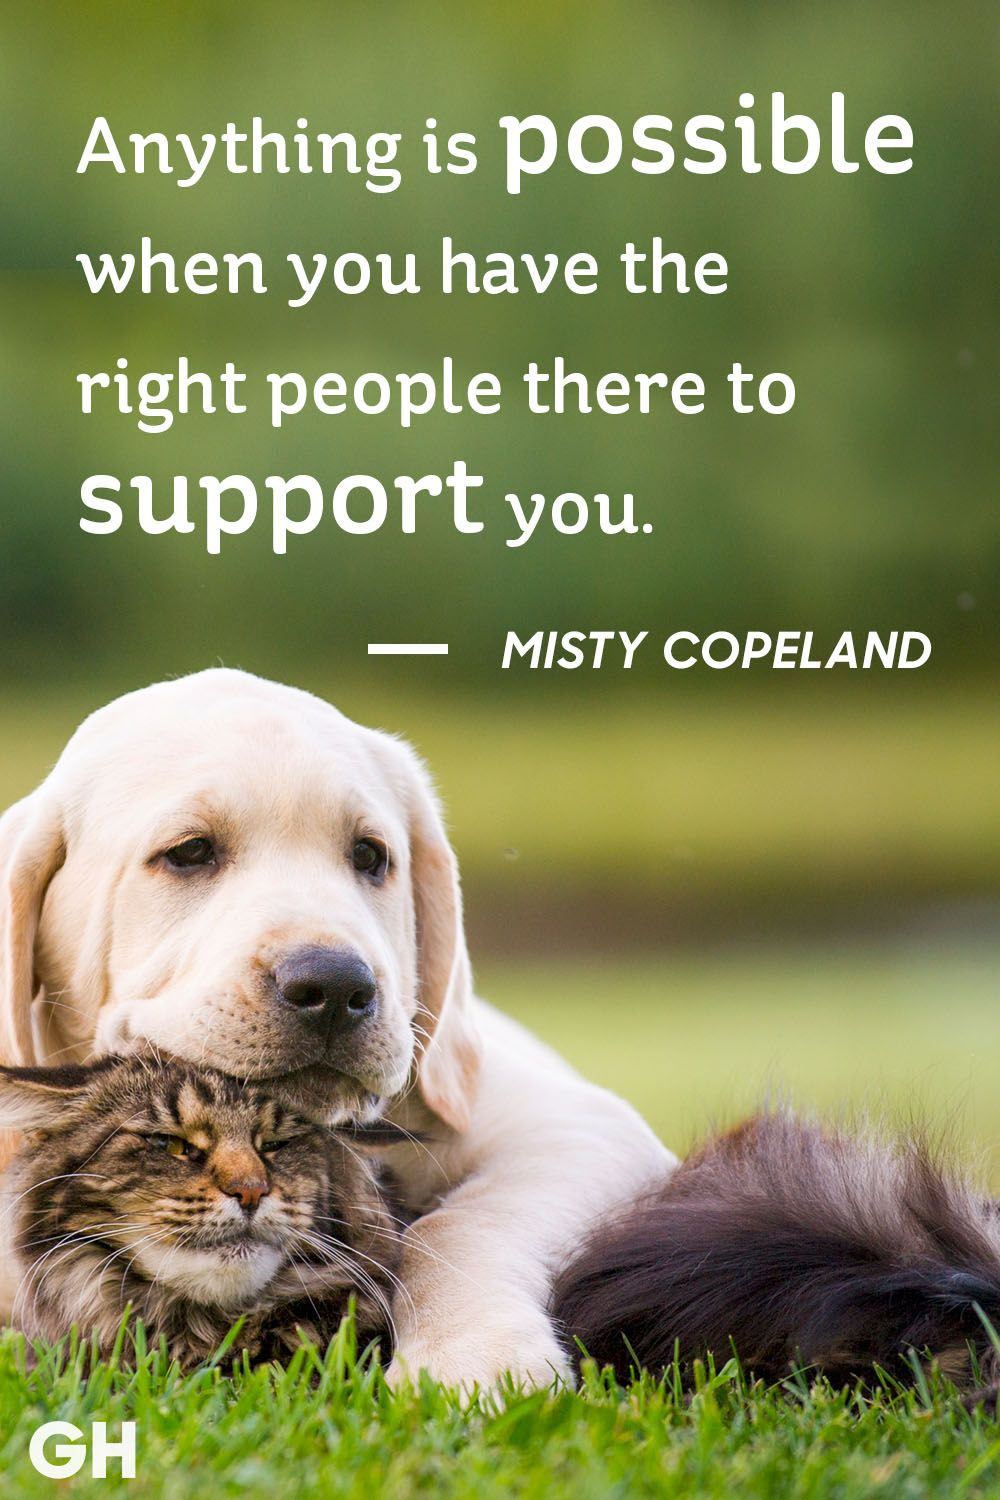 Misty Copeland friendship quote